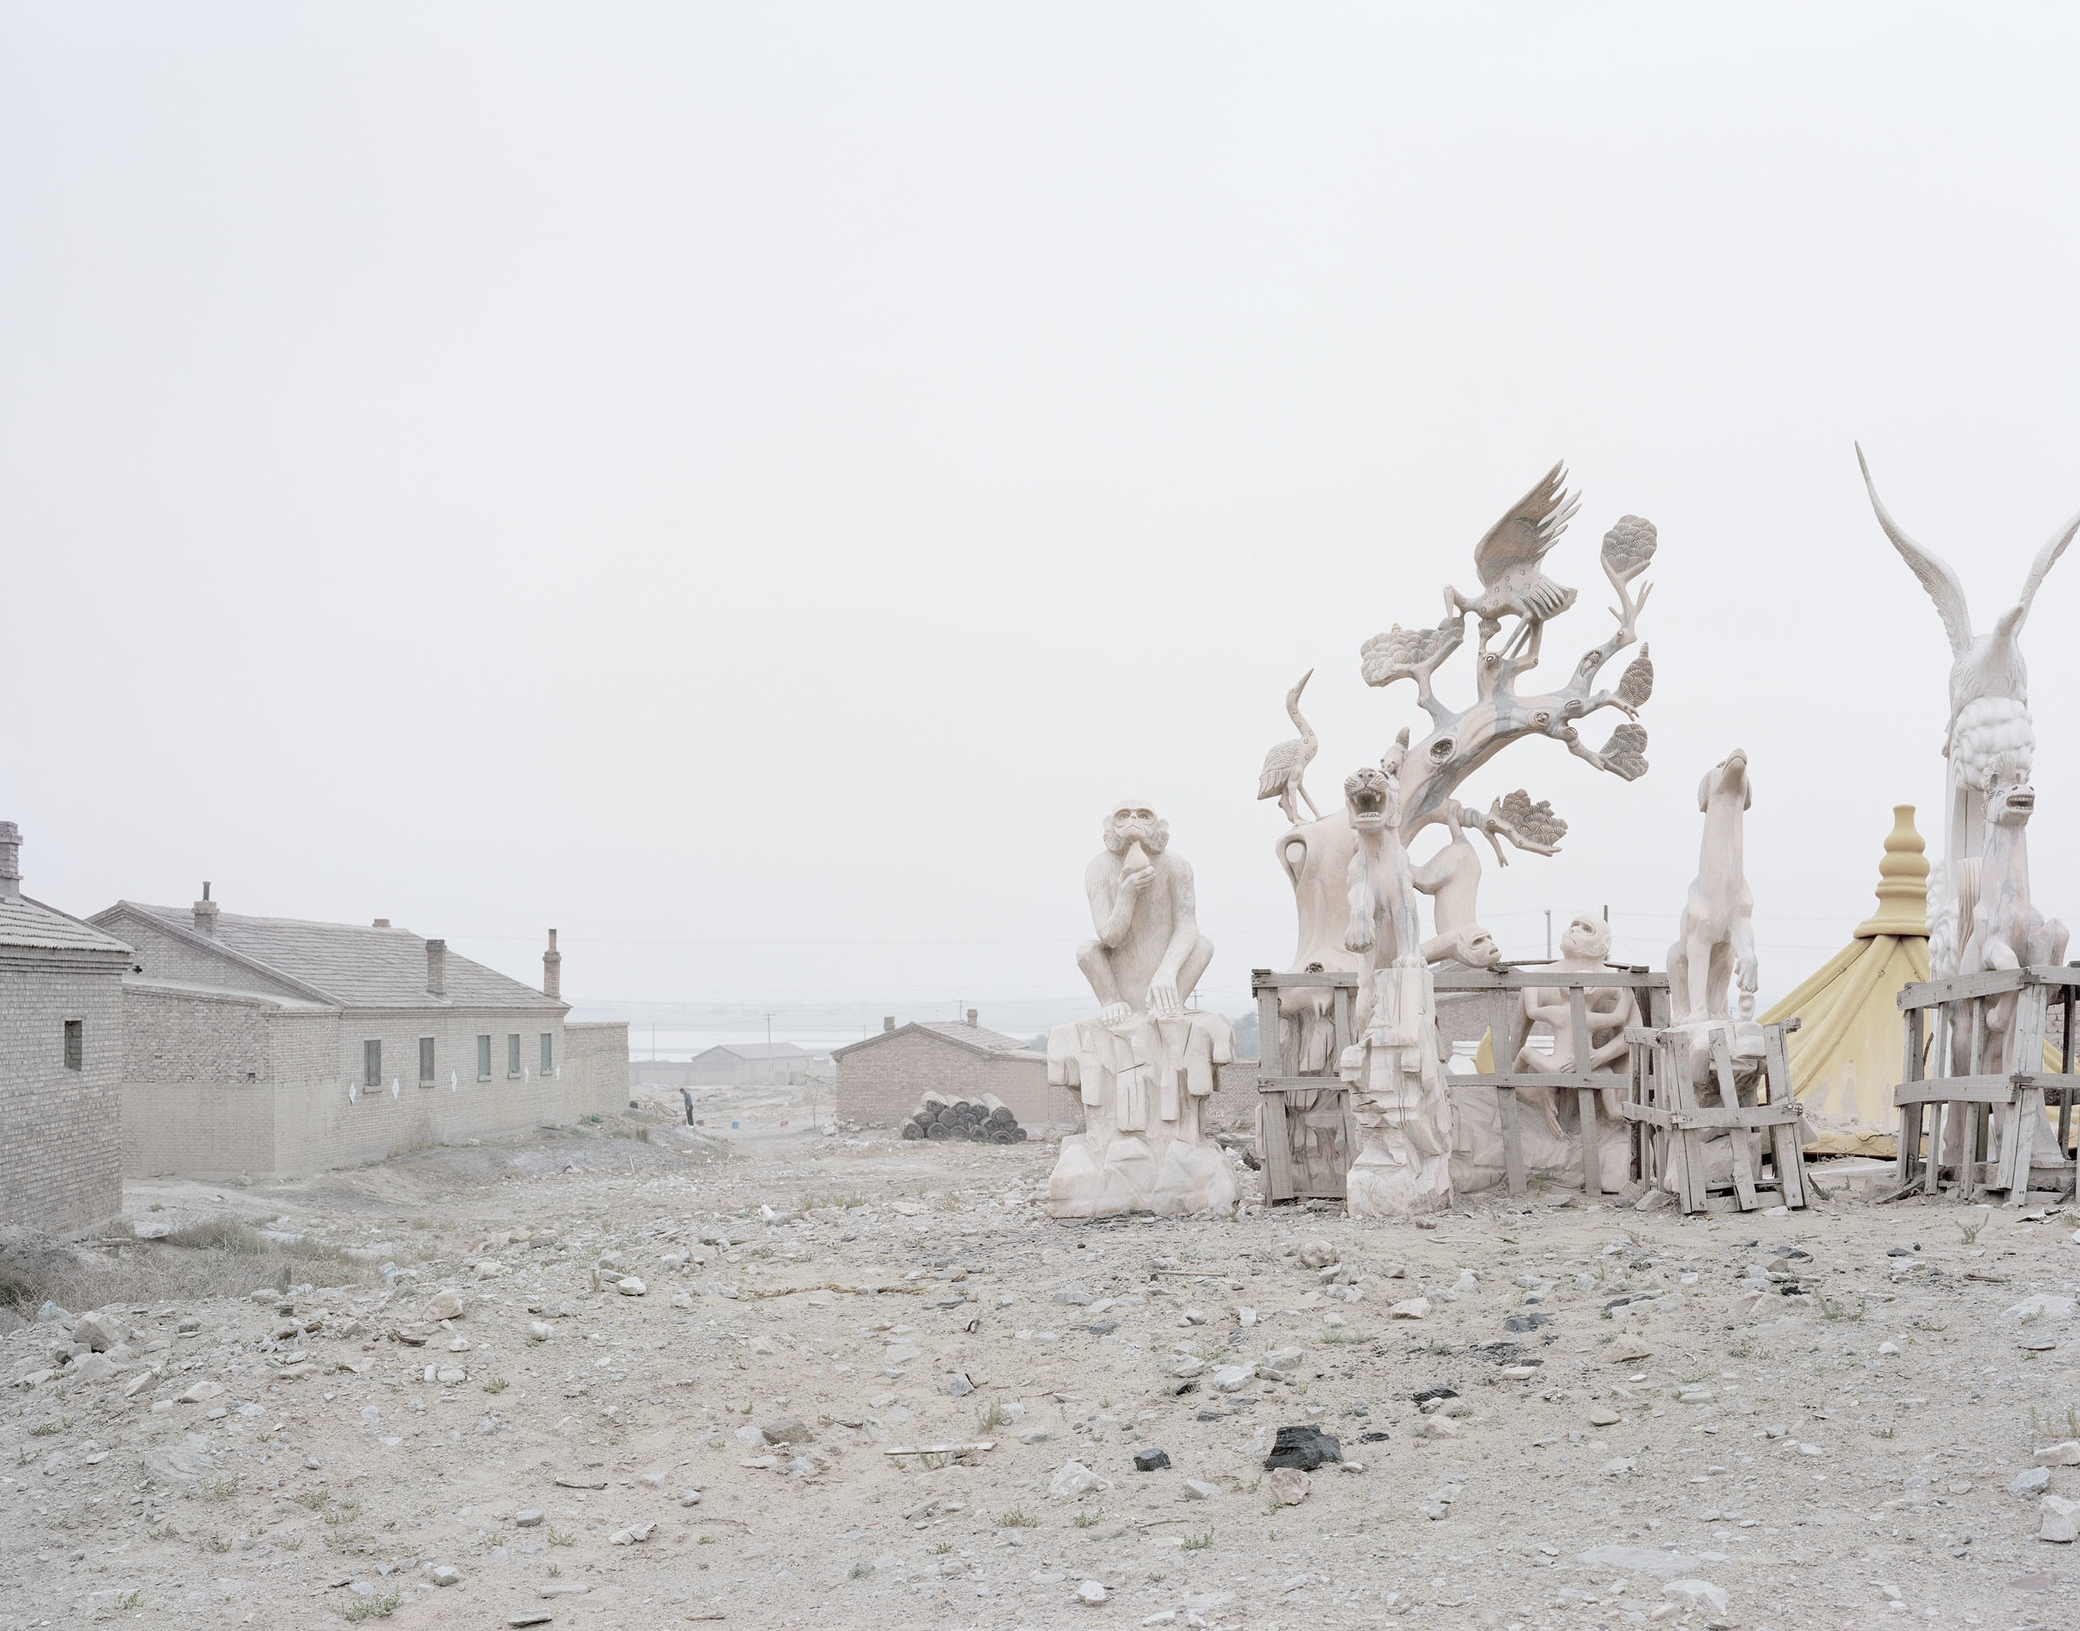 A Sculpture beside a Country, Inner Mongolia, 2011